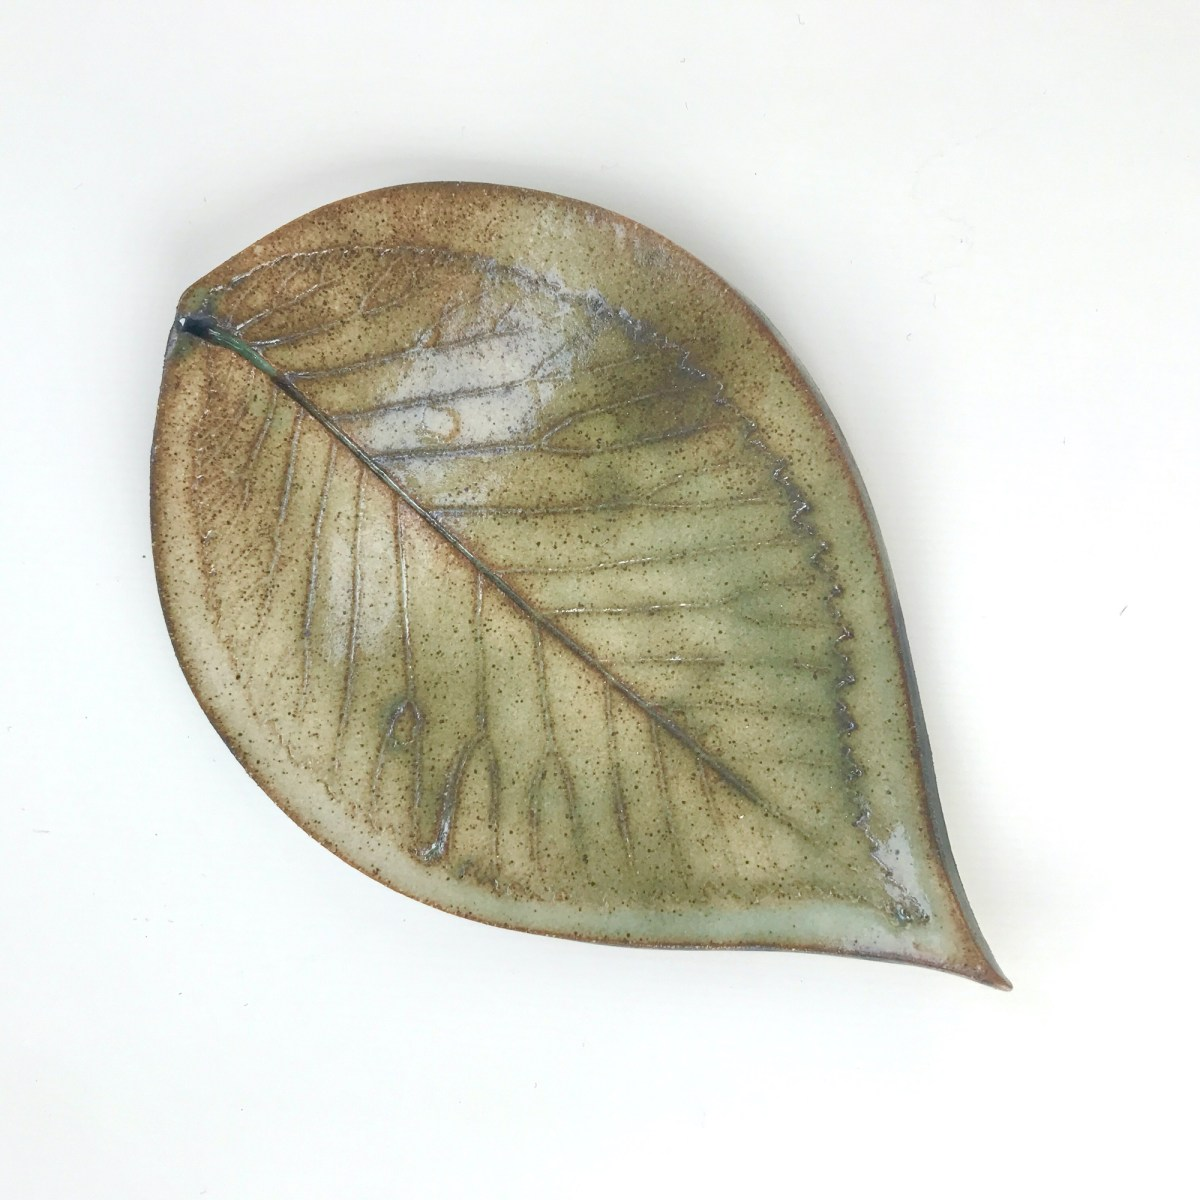 Fallen Leaf Ceramic Wall Art by Sonya Ceramic Art - Rustic Green Hornbeam Leaf Design